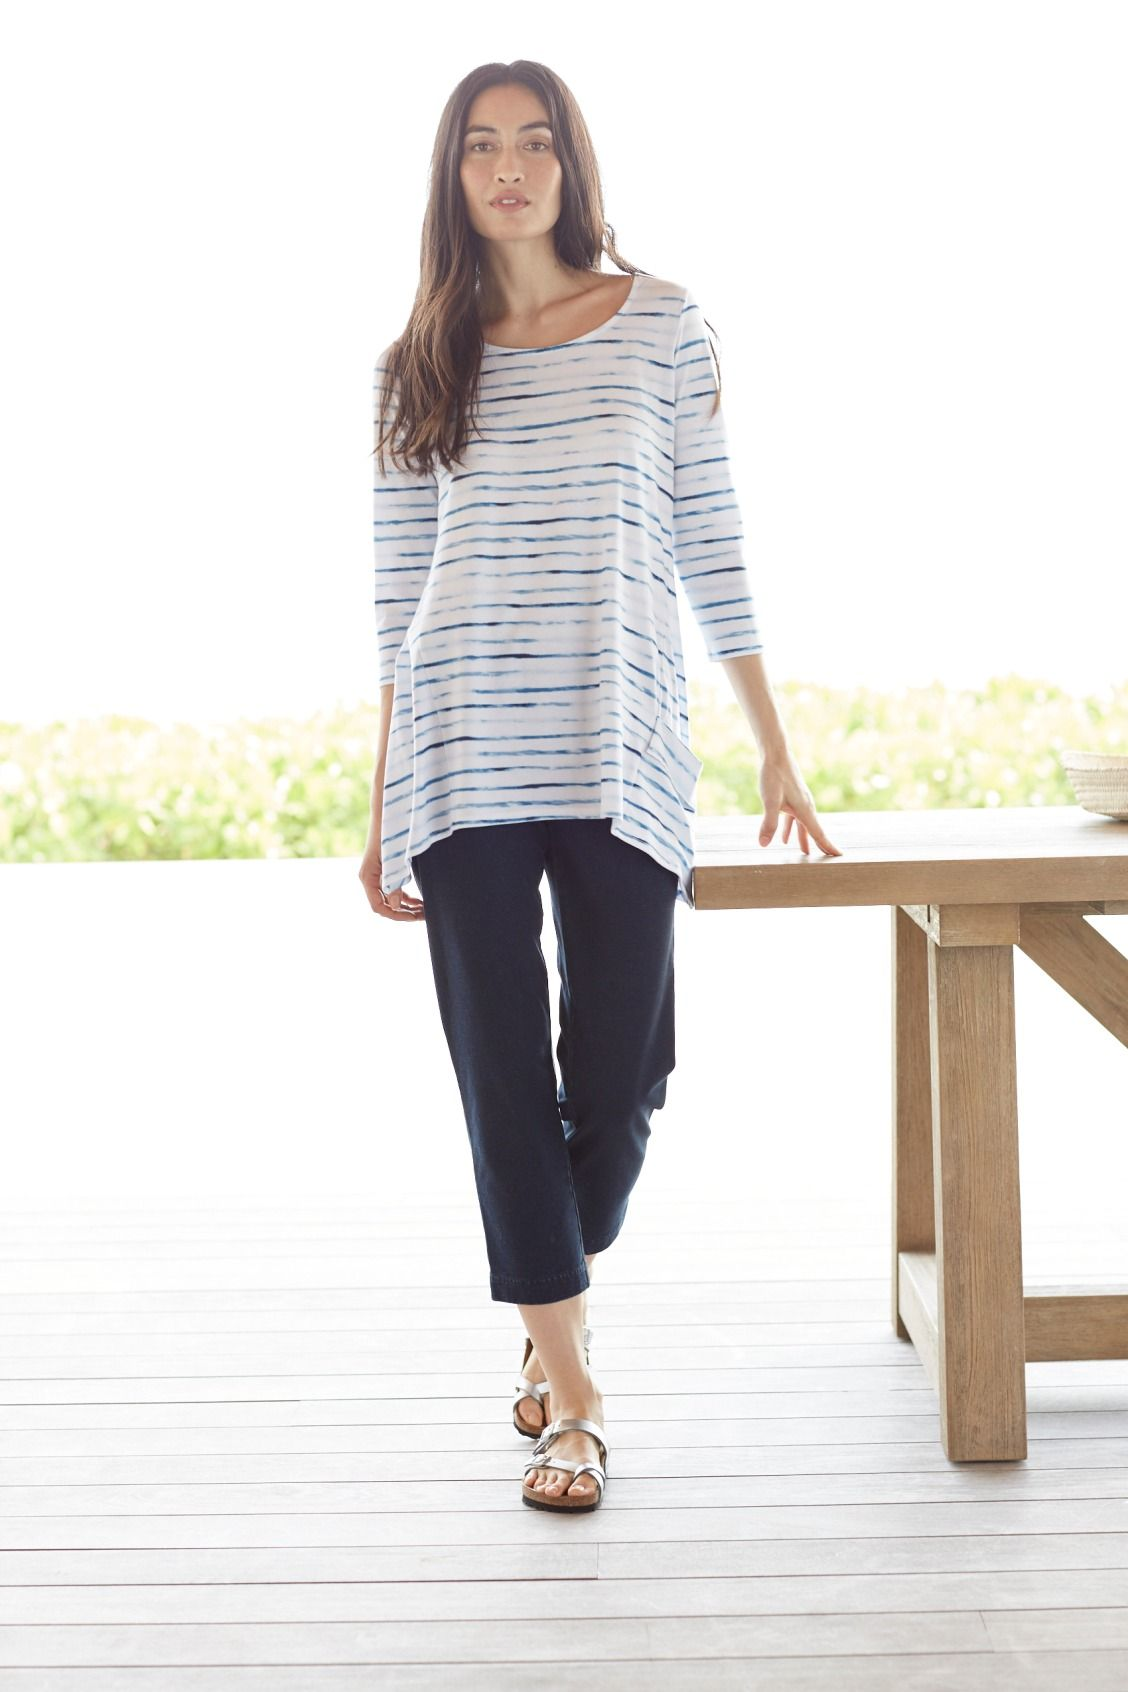 091b9d40c1f8 Soft stripes for easy days (featuring J.Jill's Pure Jill Draped-Pocket Top)